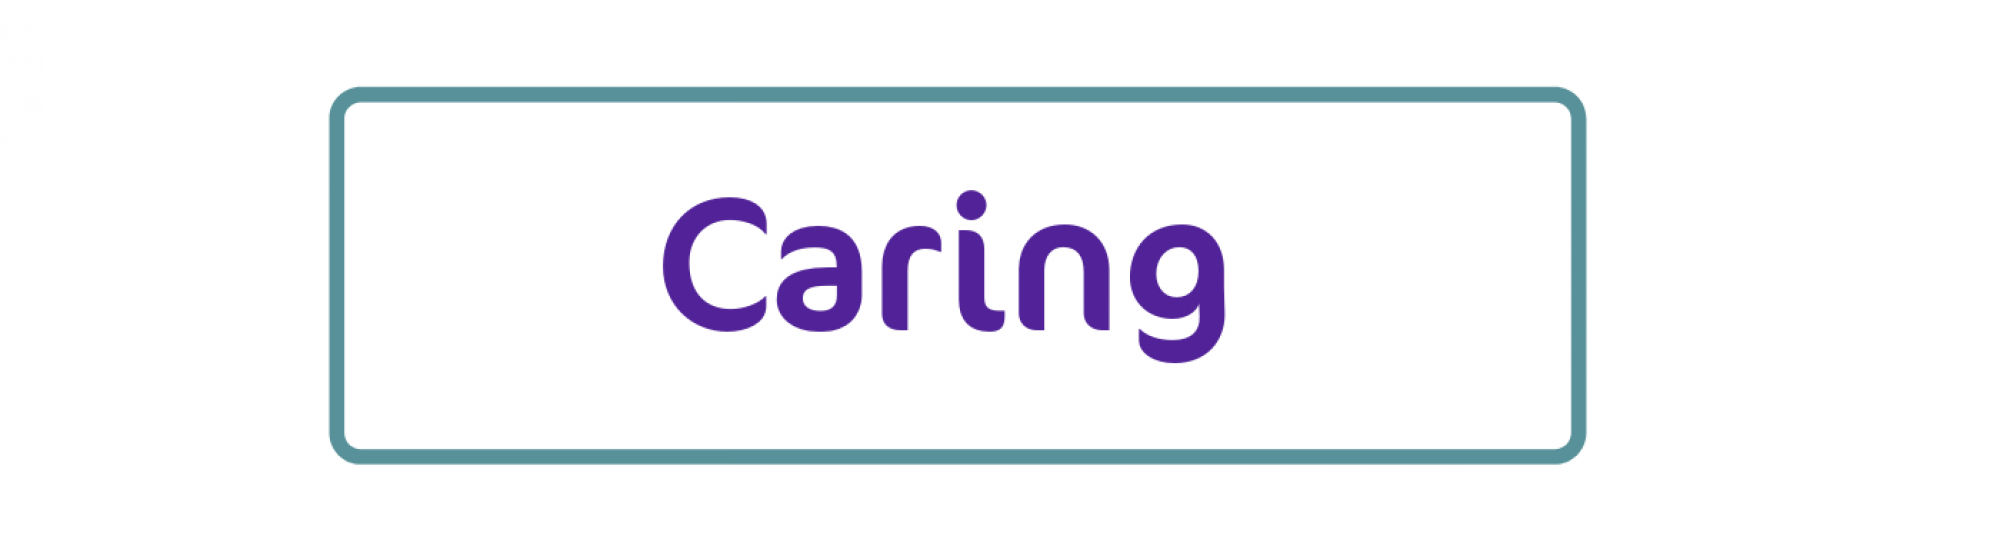 Living the Values - Caring